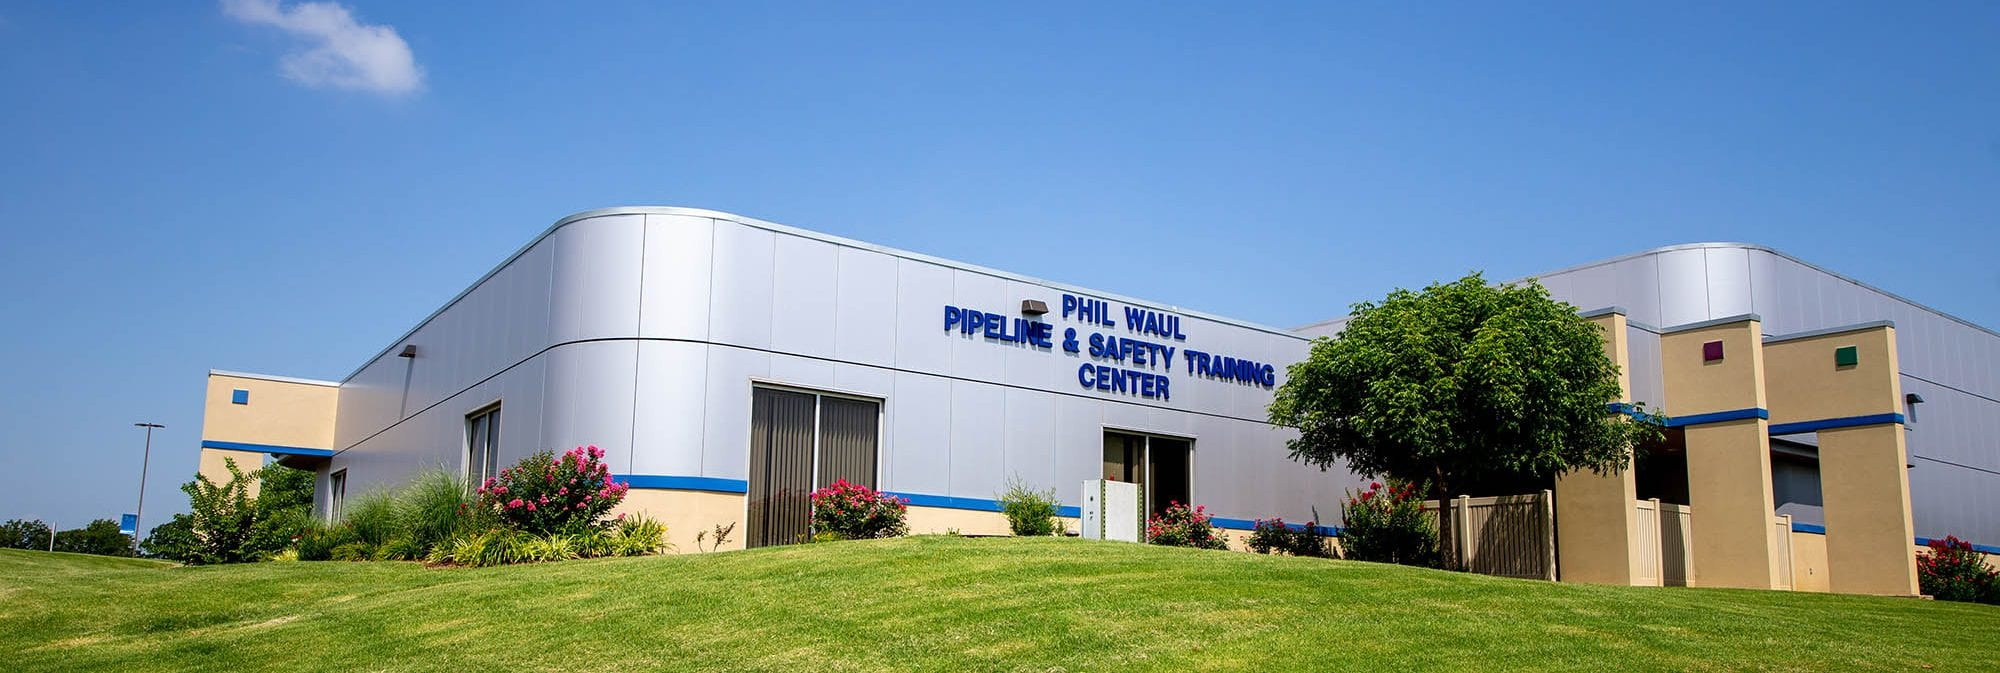 picture of the Pipeline and Safety Training building at Central Tech